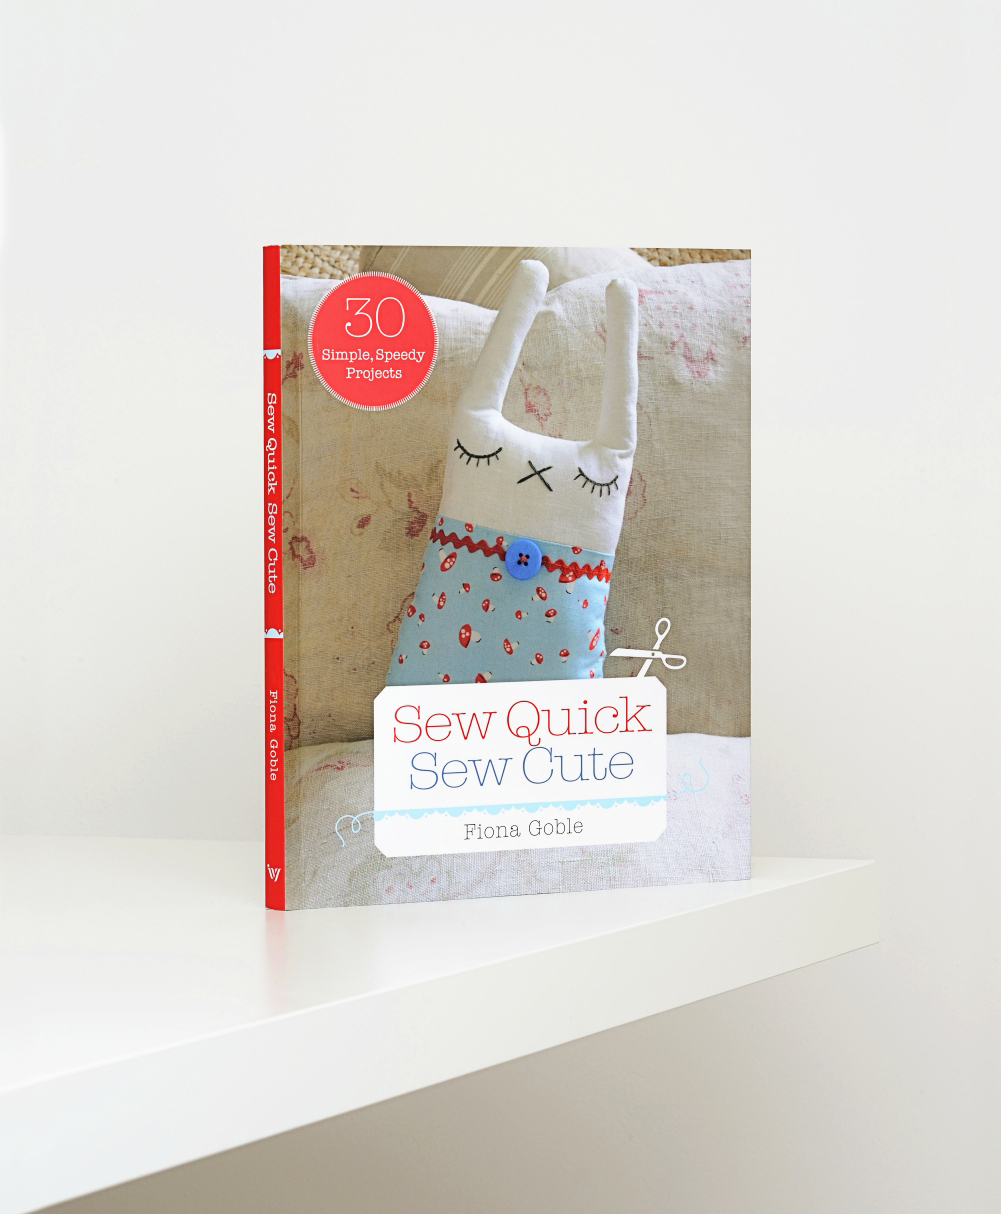 Sew Quick Sew Cute.  Commissioned by Ivy Press